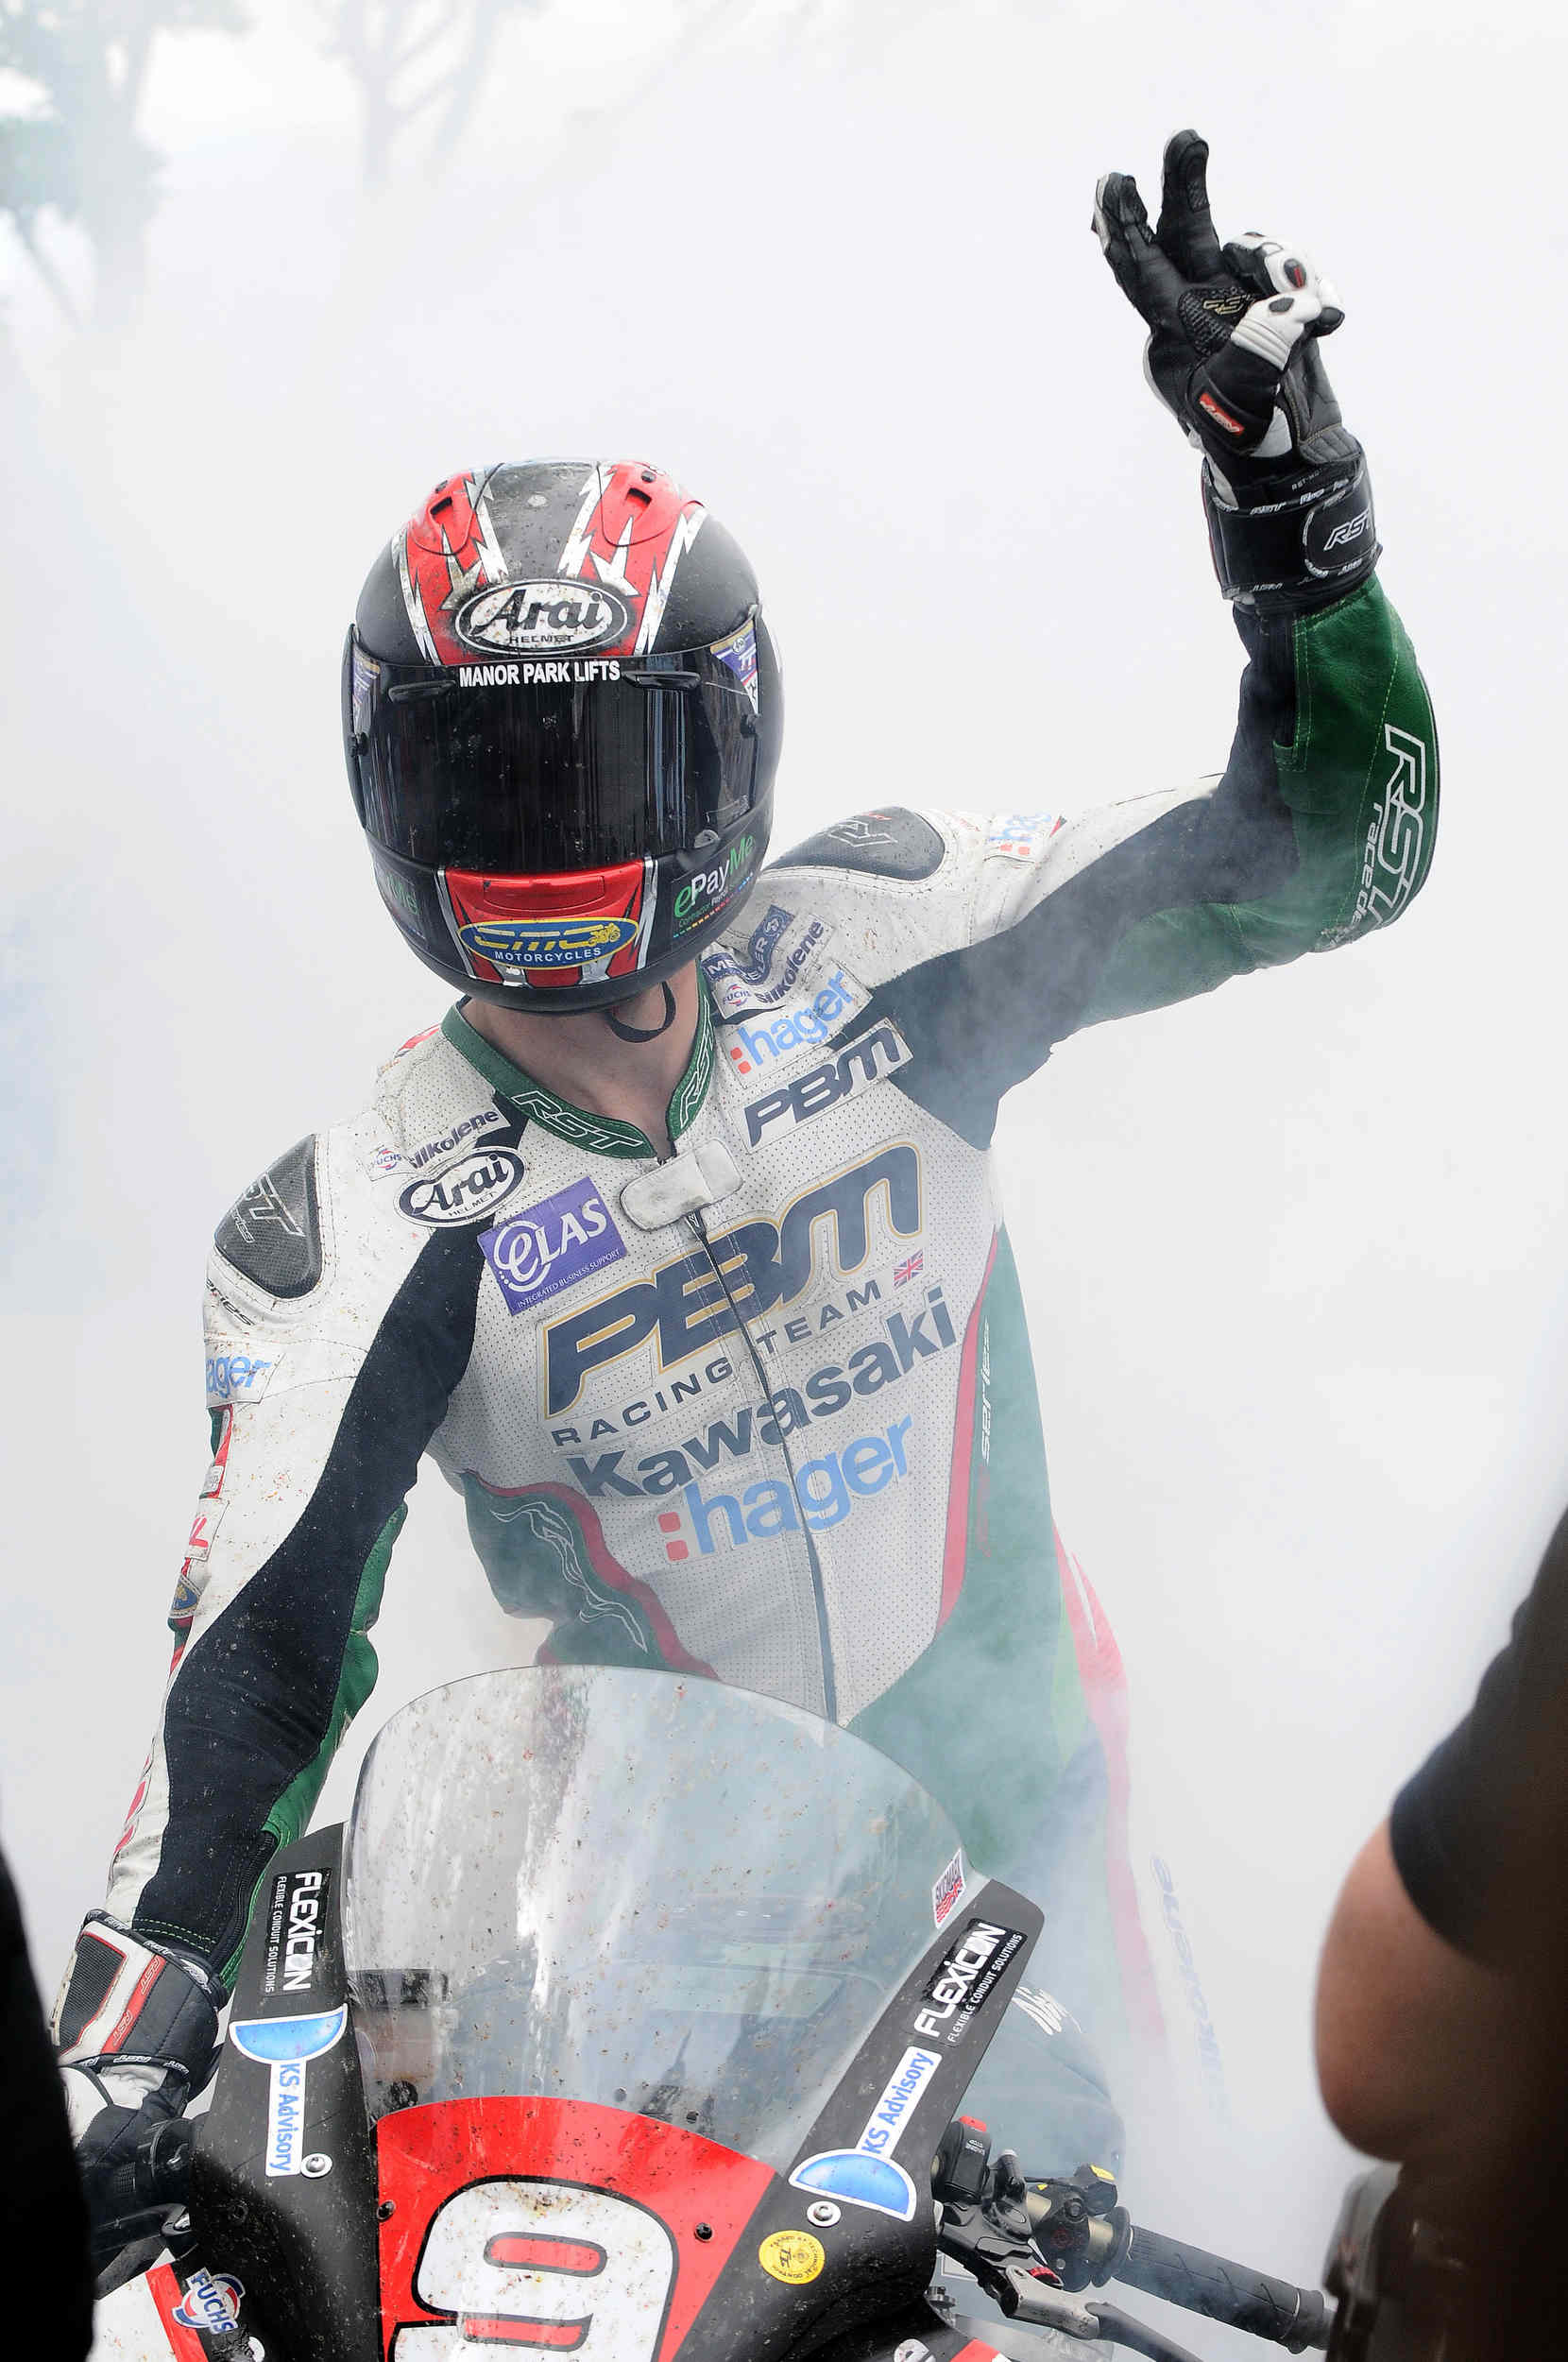 Ian Hutchinson sensationally wins the 2015 Superstock TT, his second win of the week